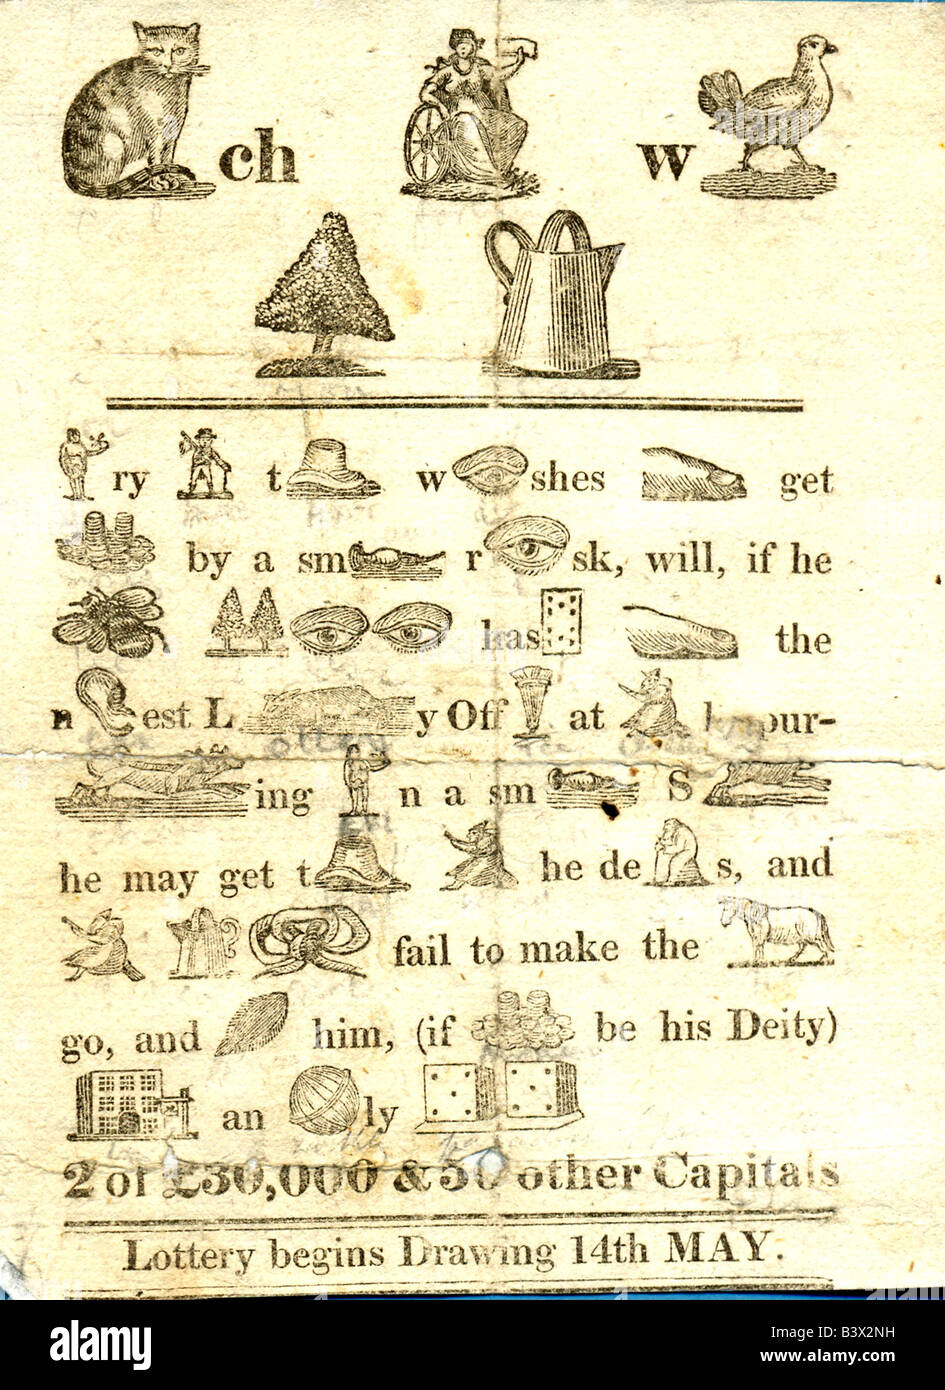 19th century State National lottery advertisement in form of rebus puzzle circa 1805 - Stock Image